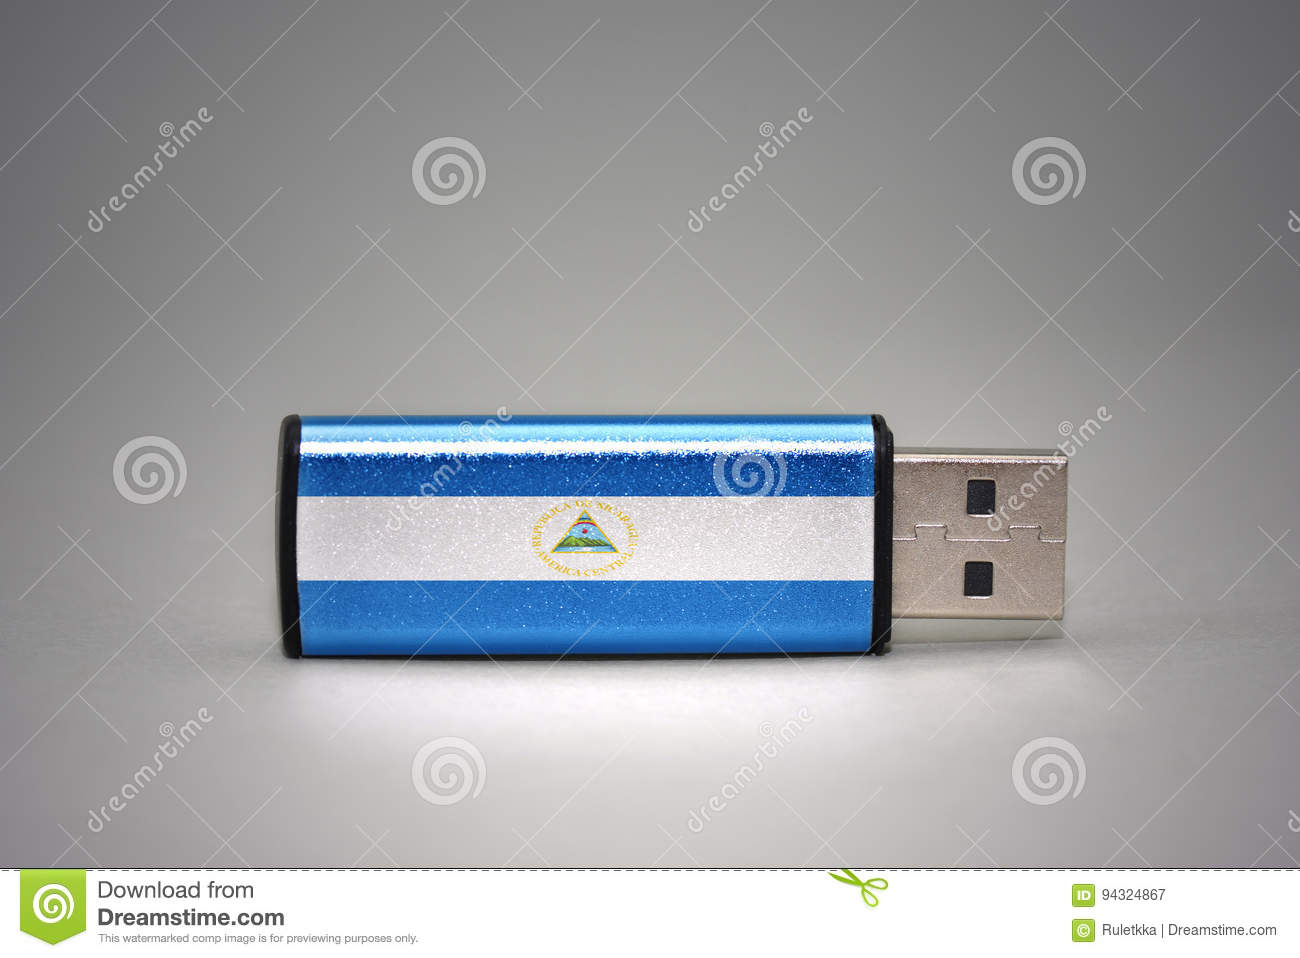 Usb flash drive with the national flag of nicaragua on gray background.